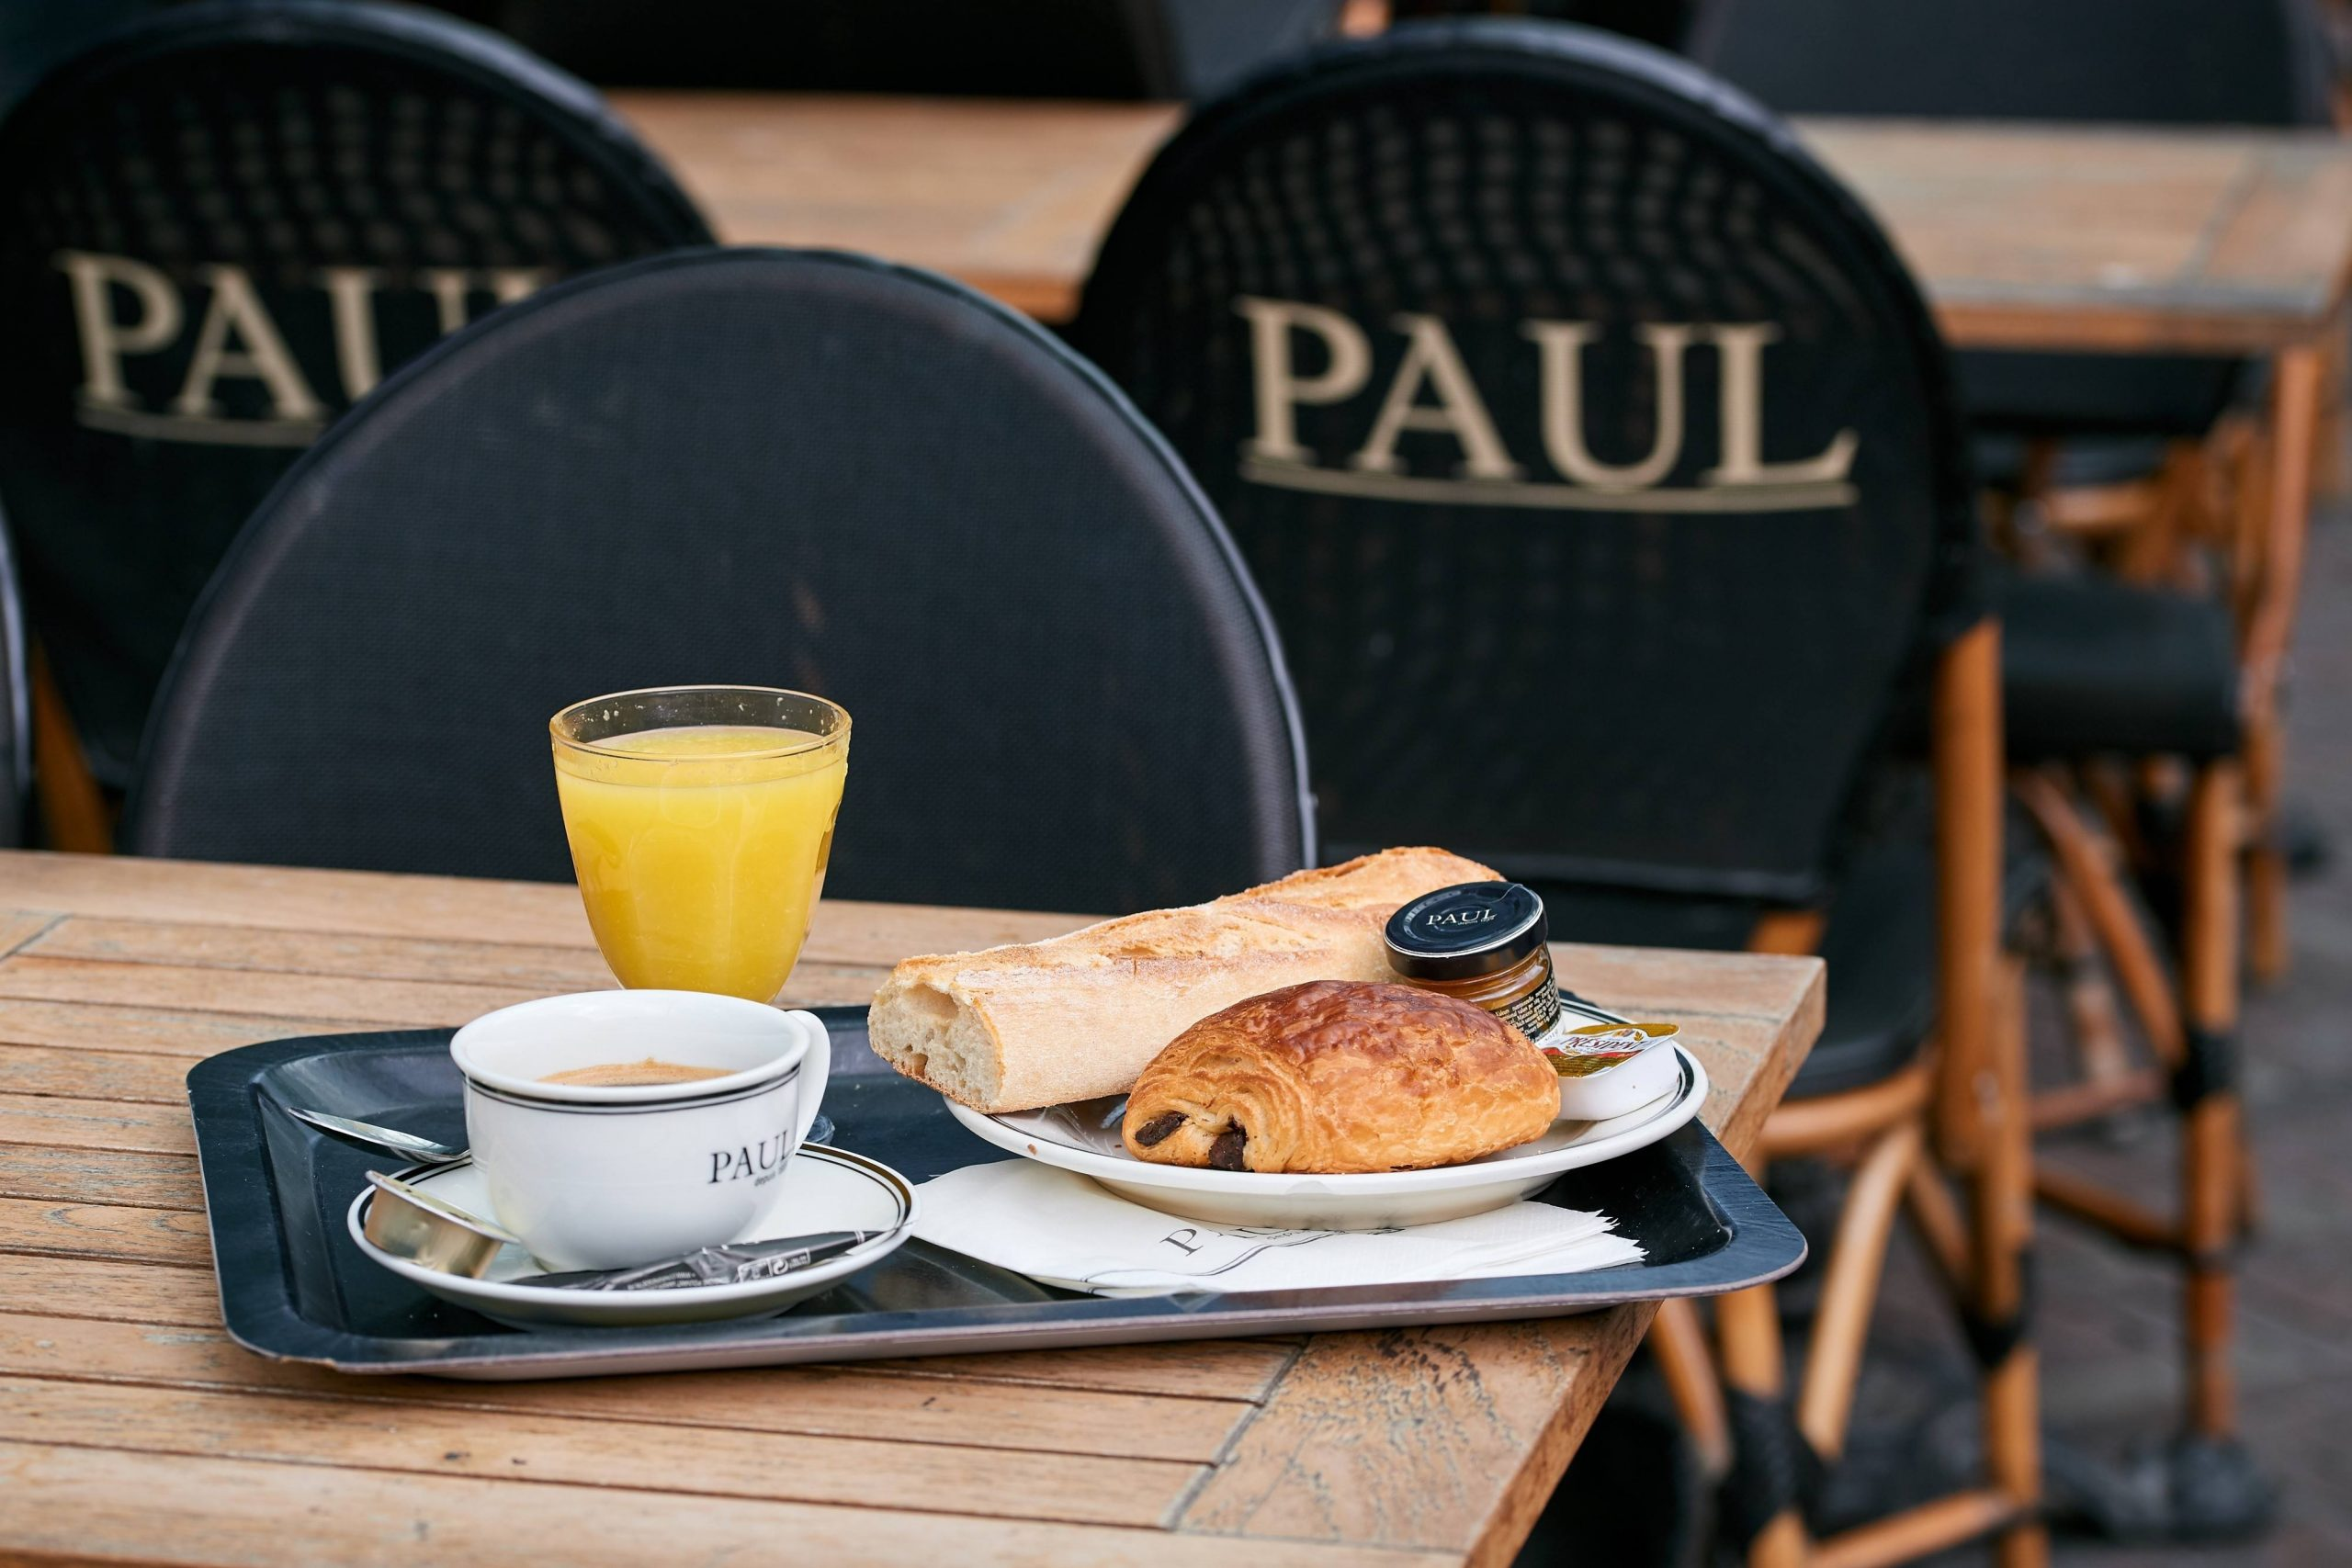 French breakfast at Paul at Docks Bruxsel